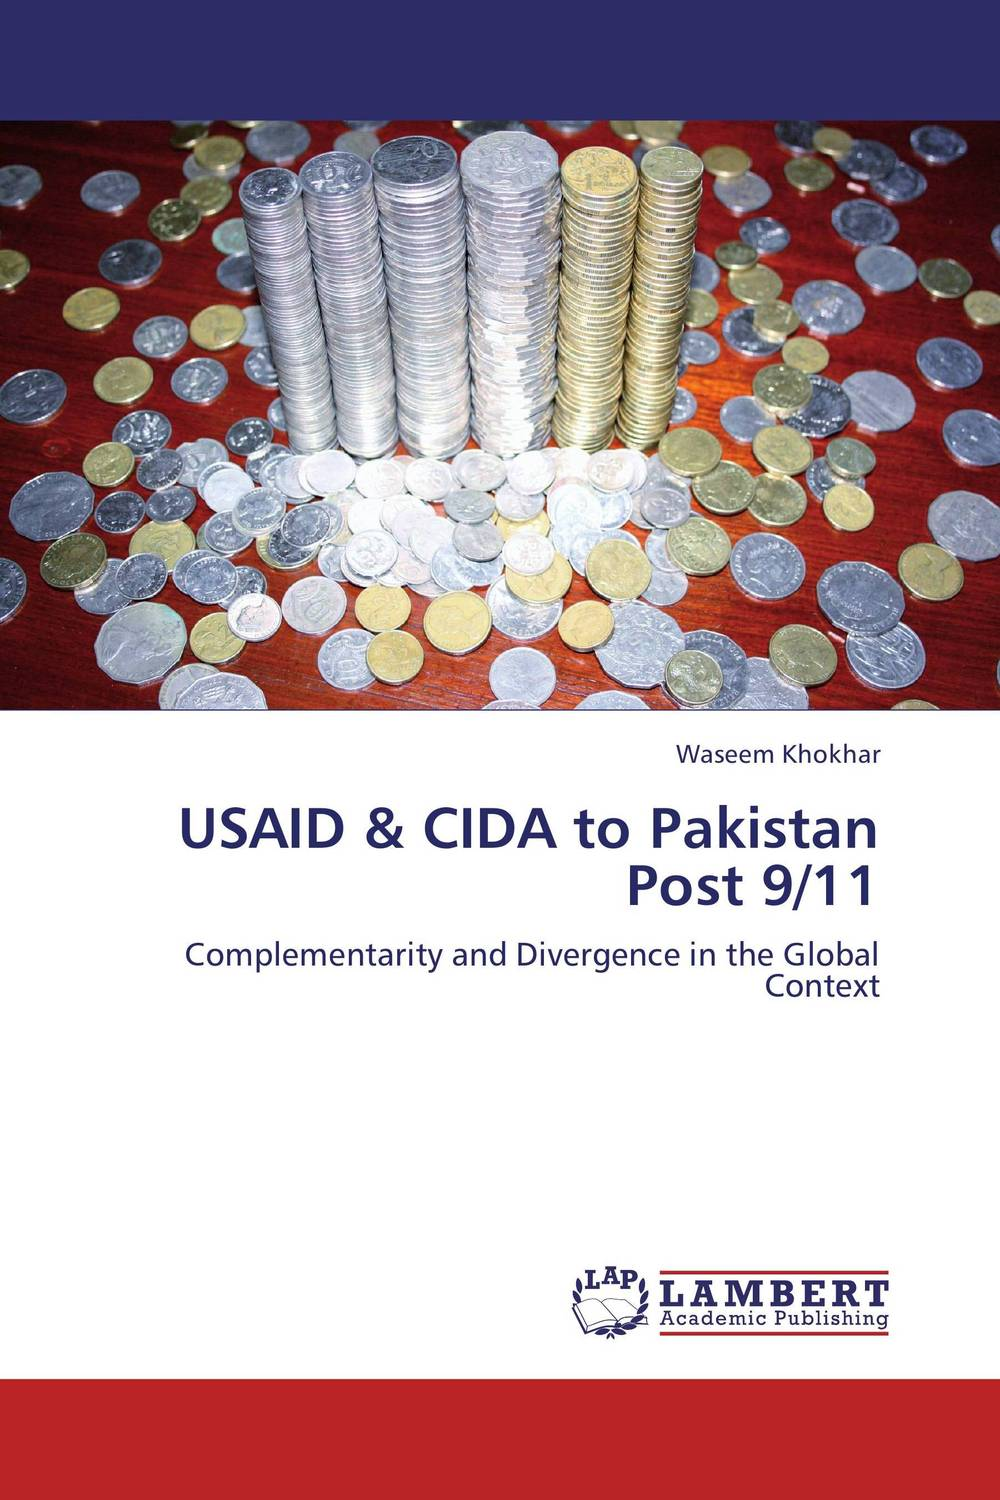 USAID & CIDA to Pakistan Post 9/11